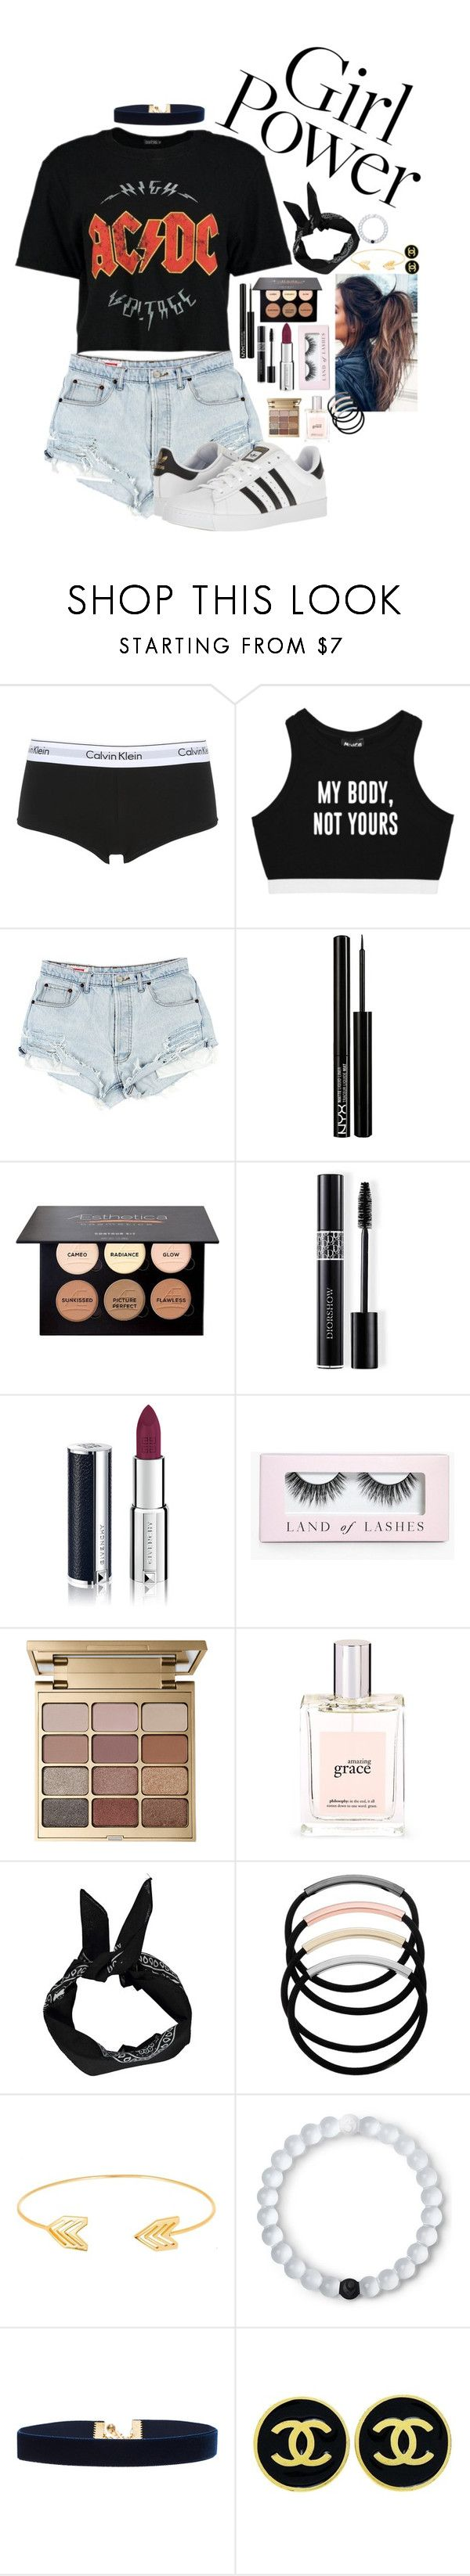 """---I GOT THE POWER---"" by ilovenialler24 ❤ liked on Polyvore featuring Calvin Klein Underwear, NYX, Christian Dior, Givenchy, Boohoo, Stila, philosophy, L. Erickson, Lord & Taylor and Lokai"